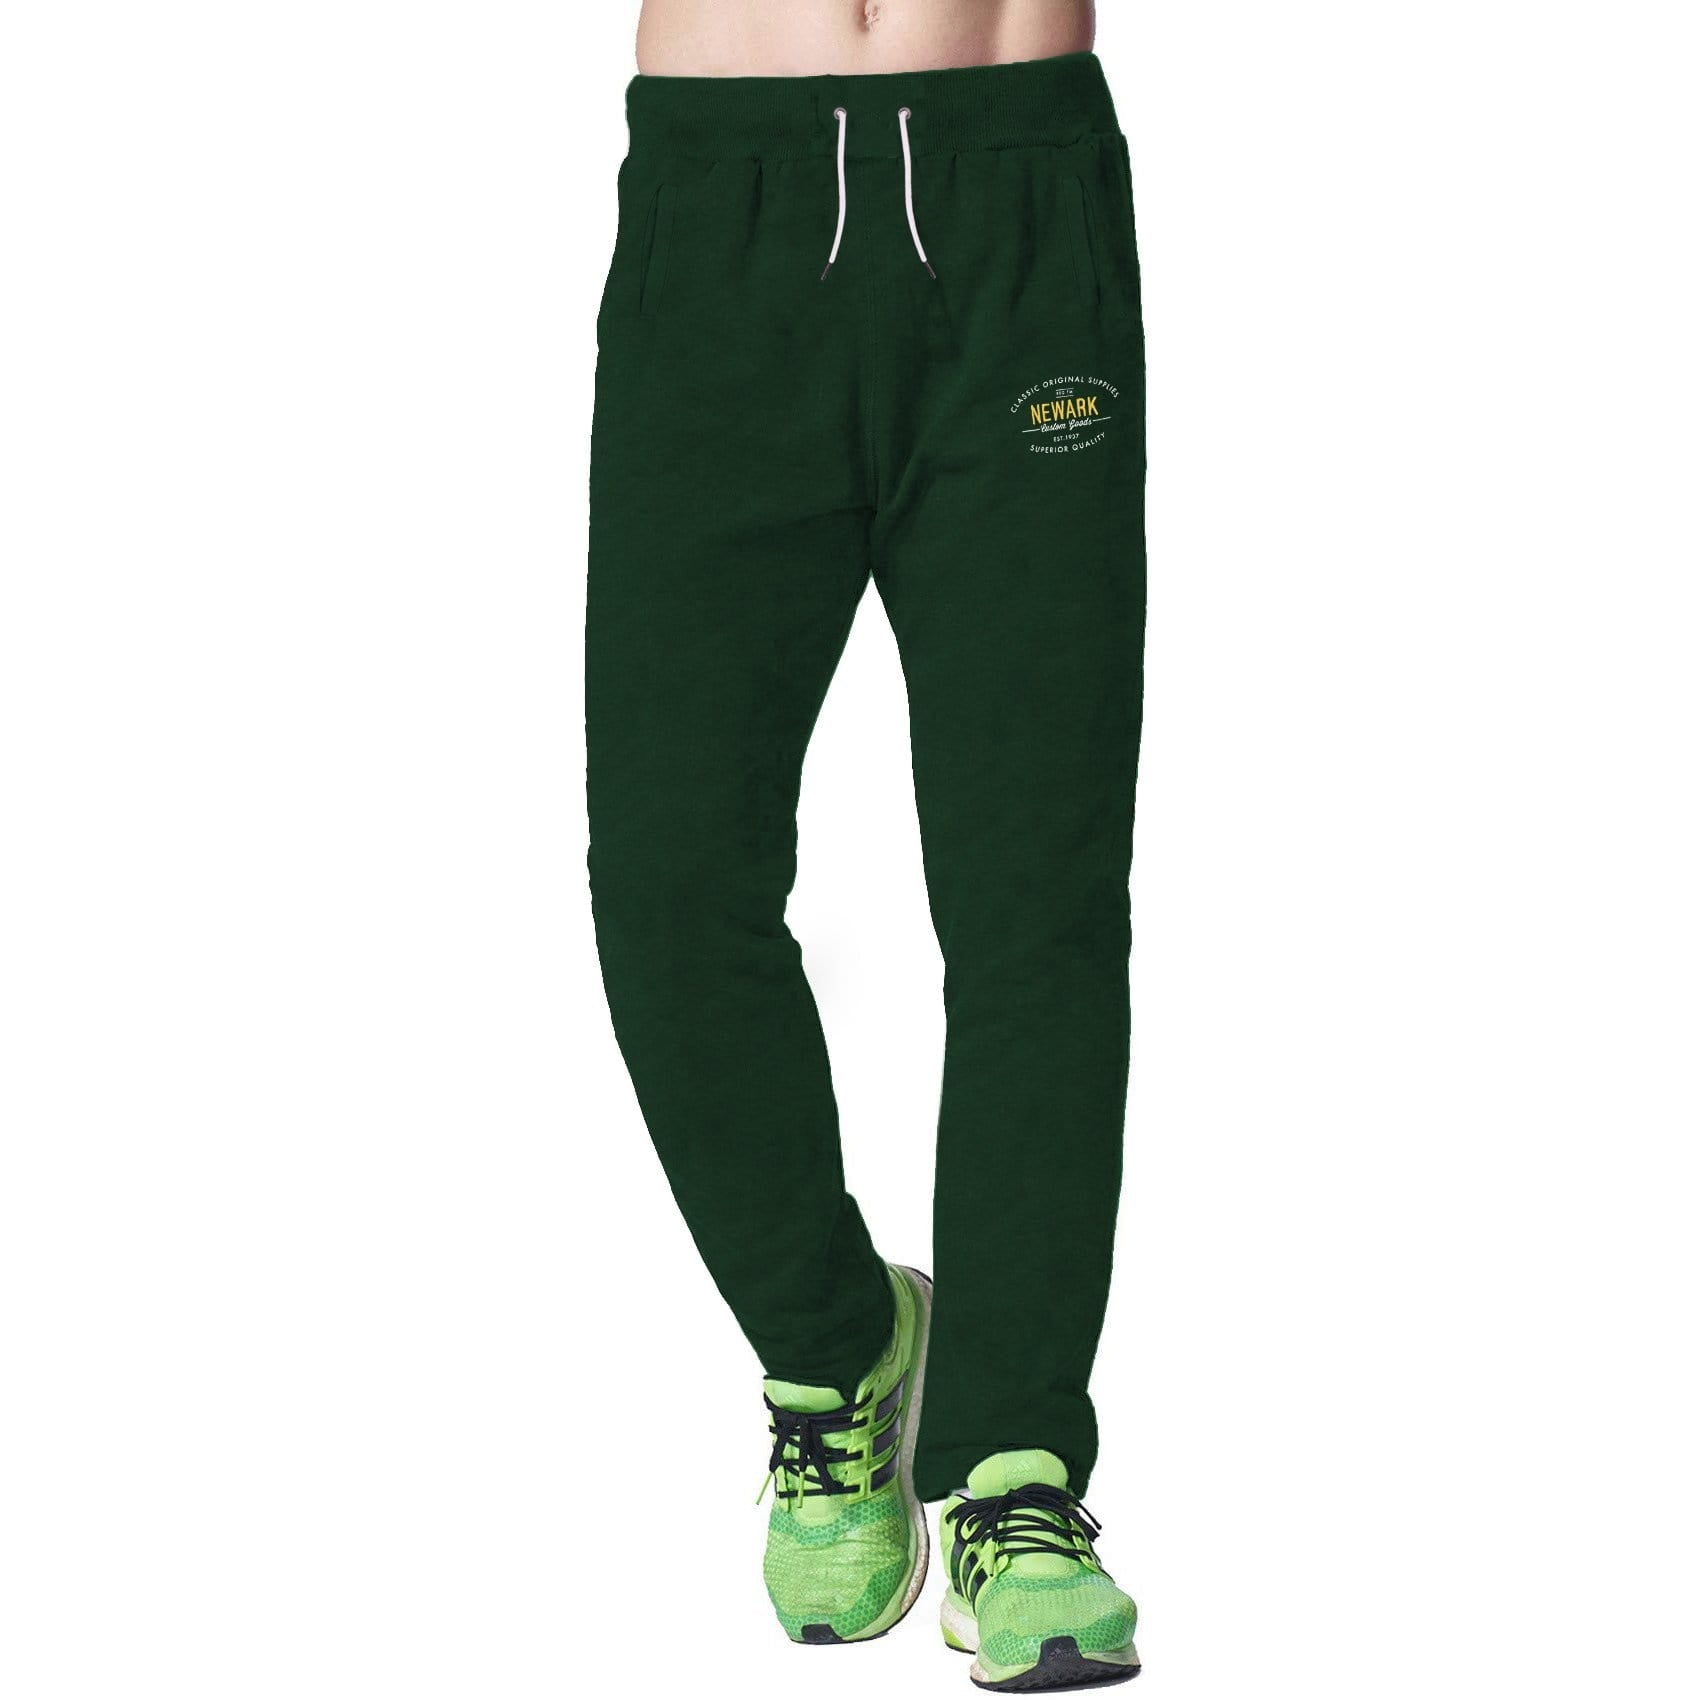 Henry James Men's Sweat Pants Bottle Green / S Men's Henry James Bottle Green NEWARK Sweat Pants